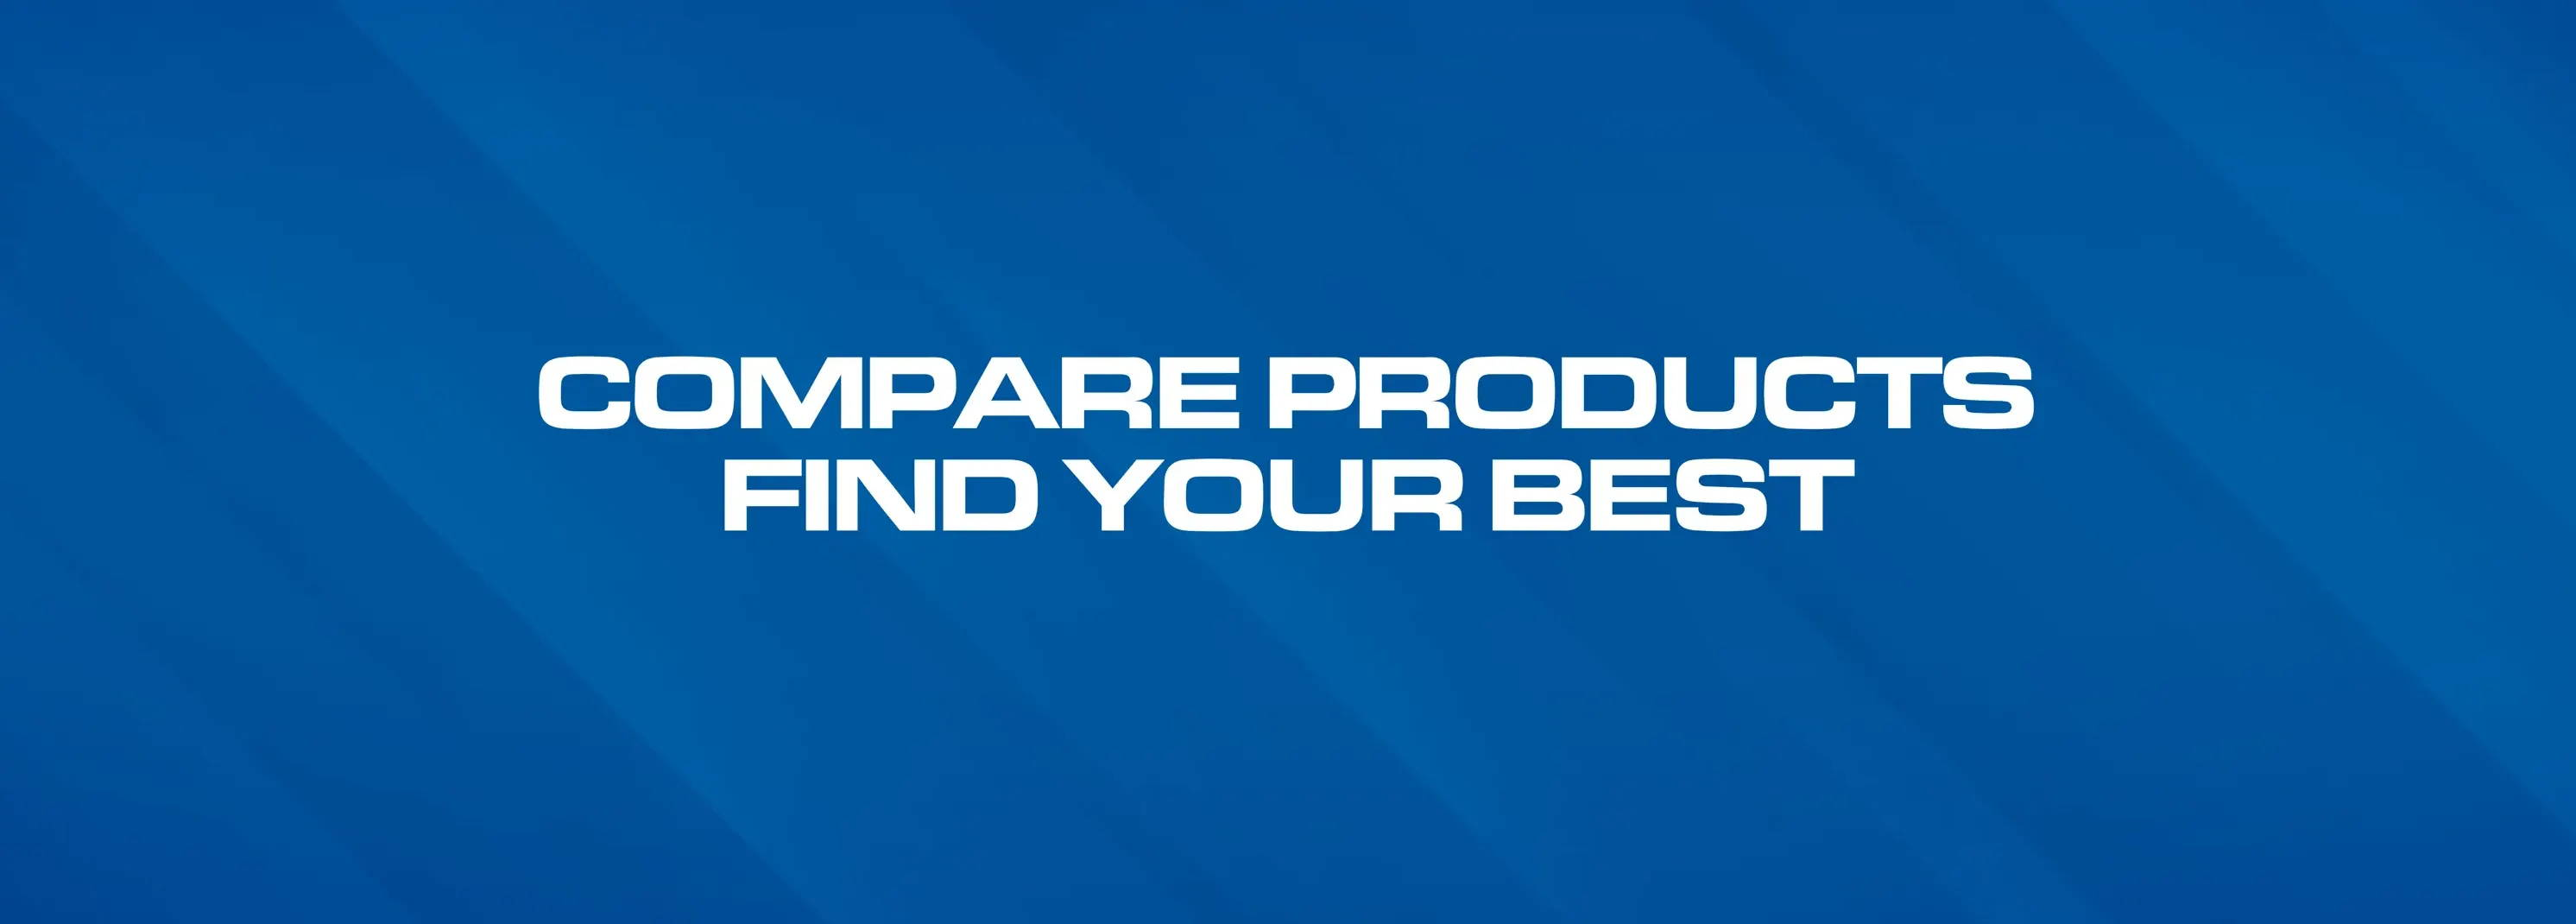 find your best & compare supplements